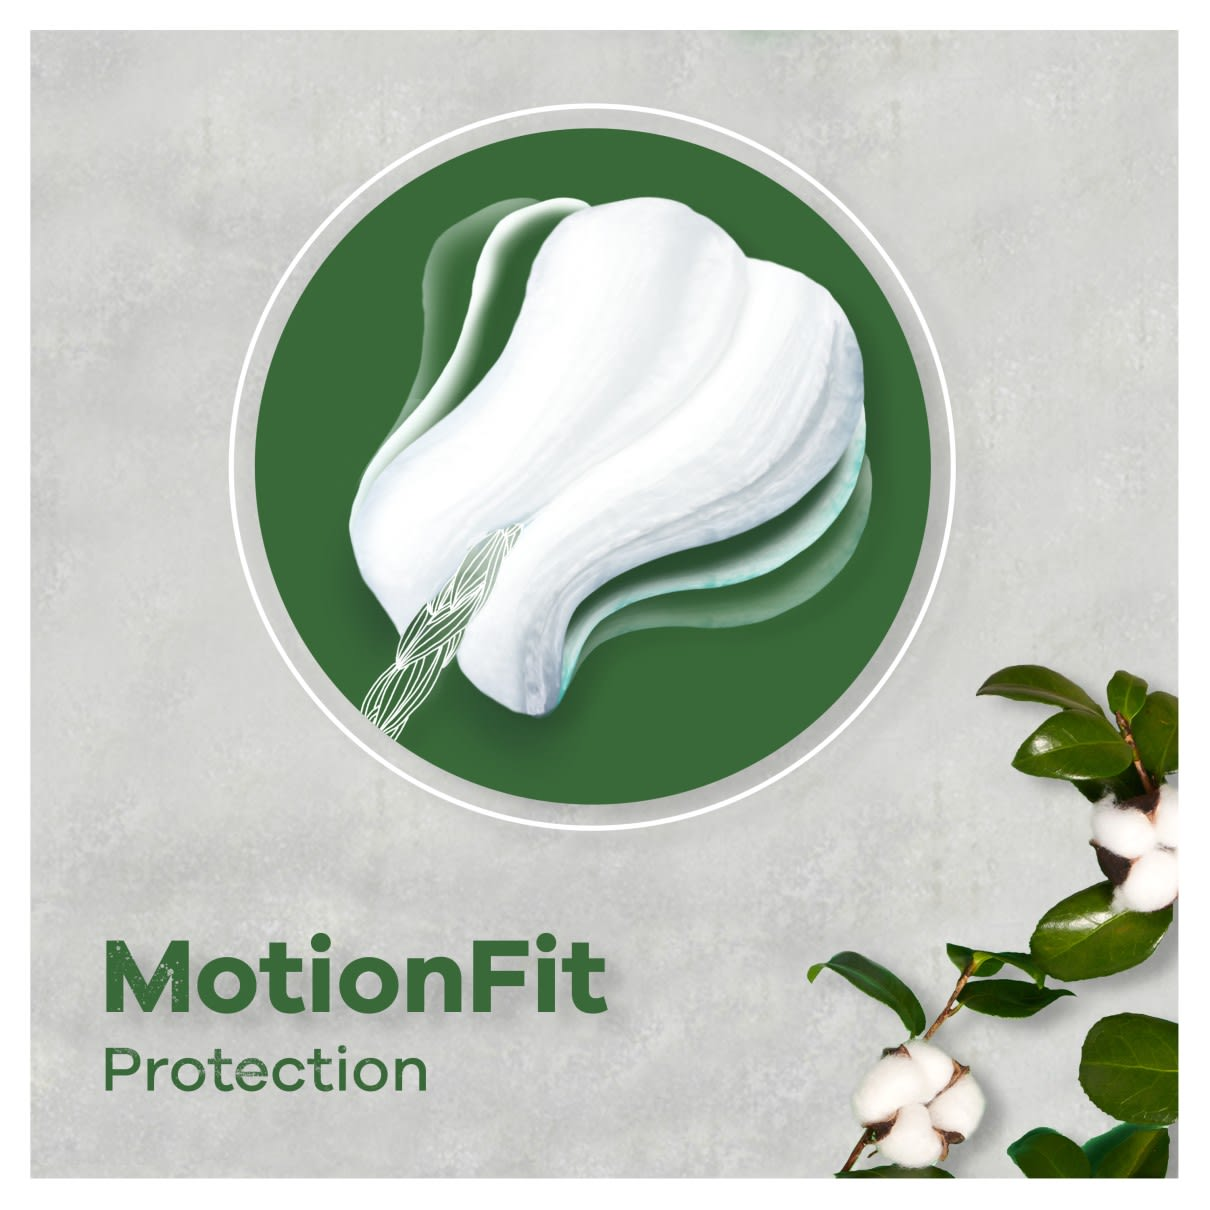 Tampax Lily Cotton Protection MotionFit Protection